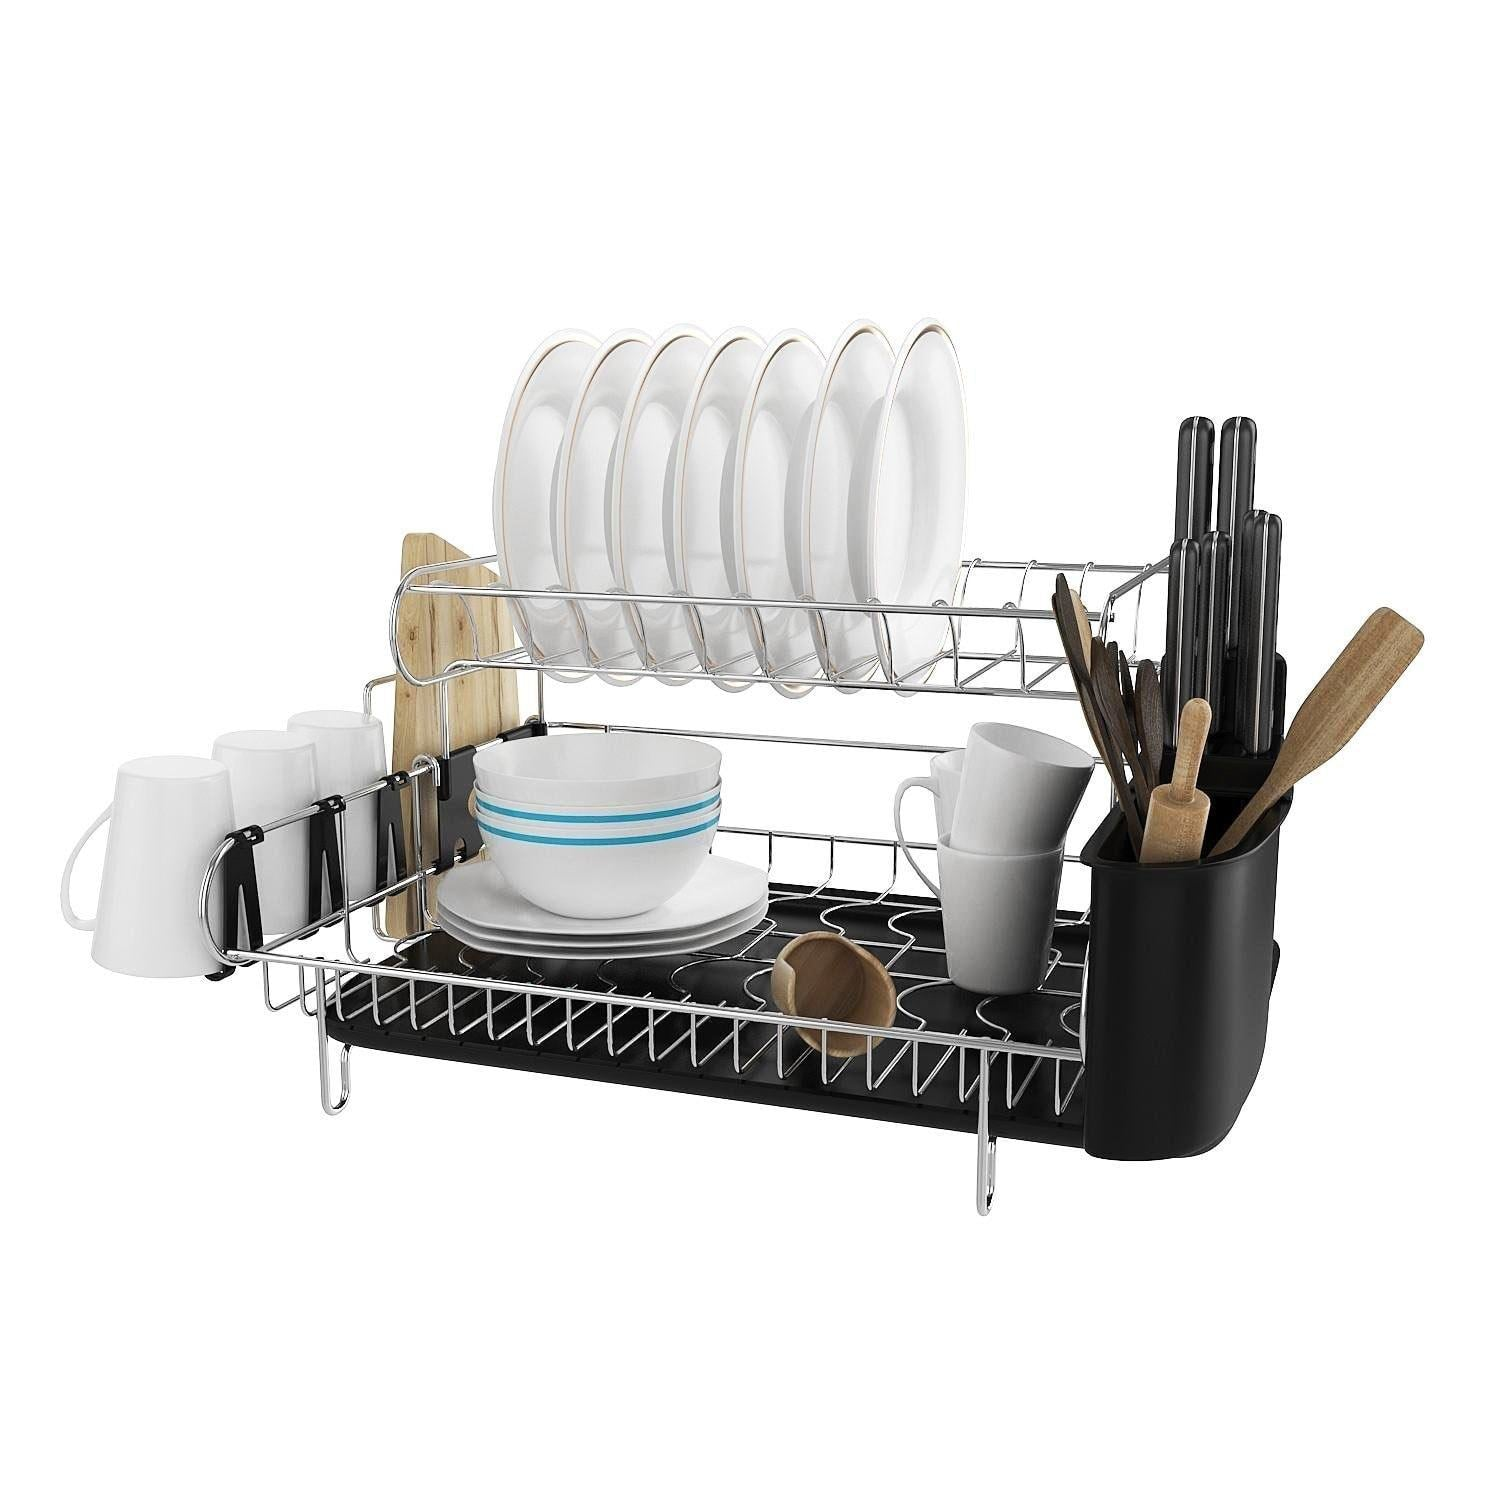 Storage professional dish drying rack 2 tier 304 stainless steel dish rack with drainboard microfiber mat kitchen utensil holder